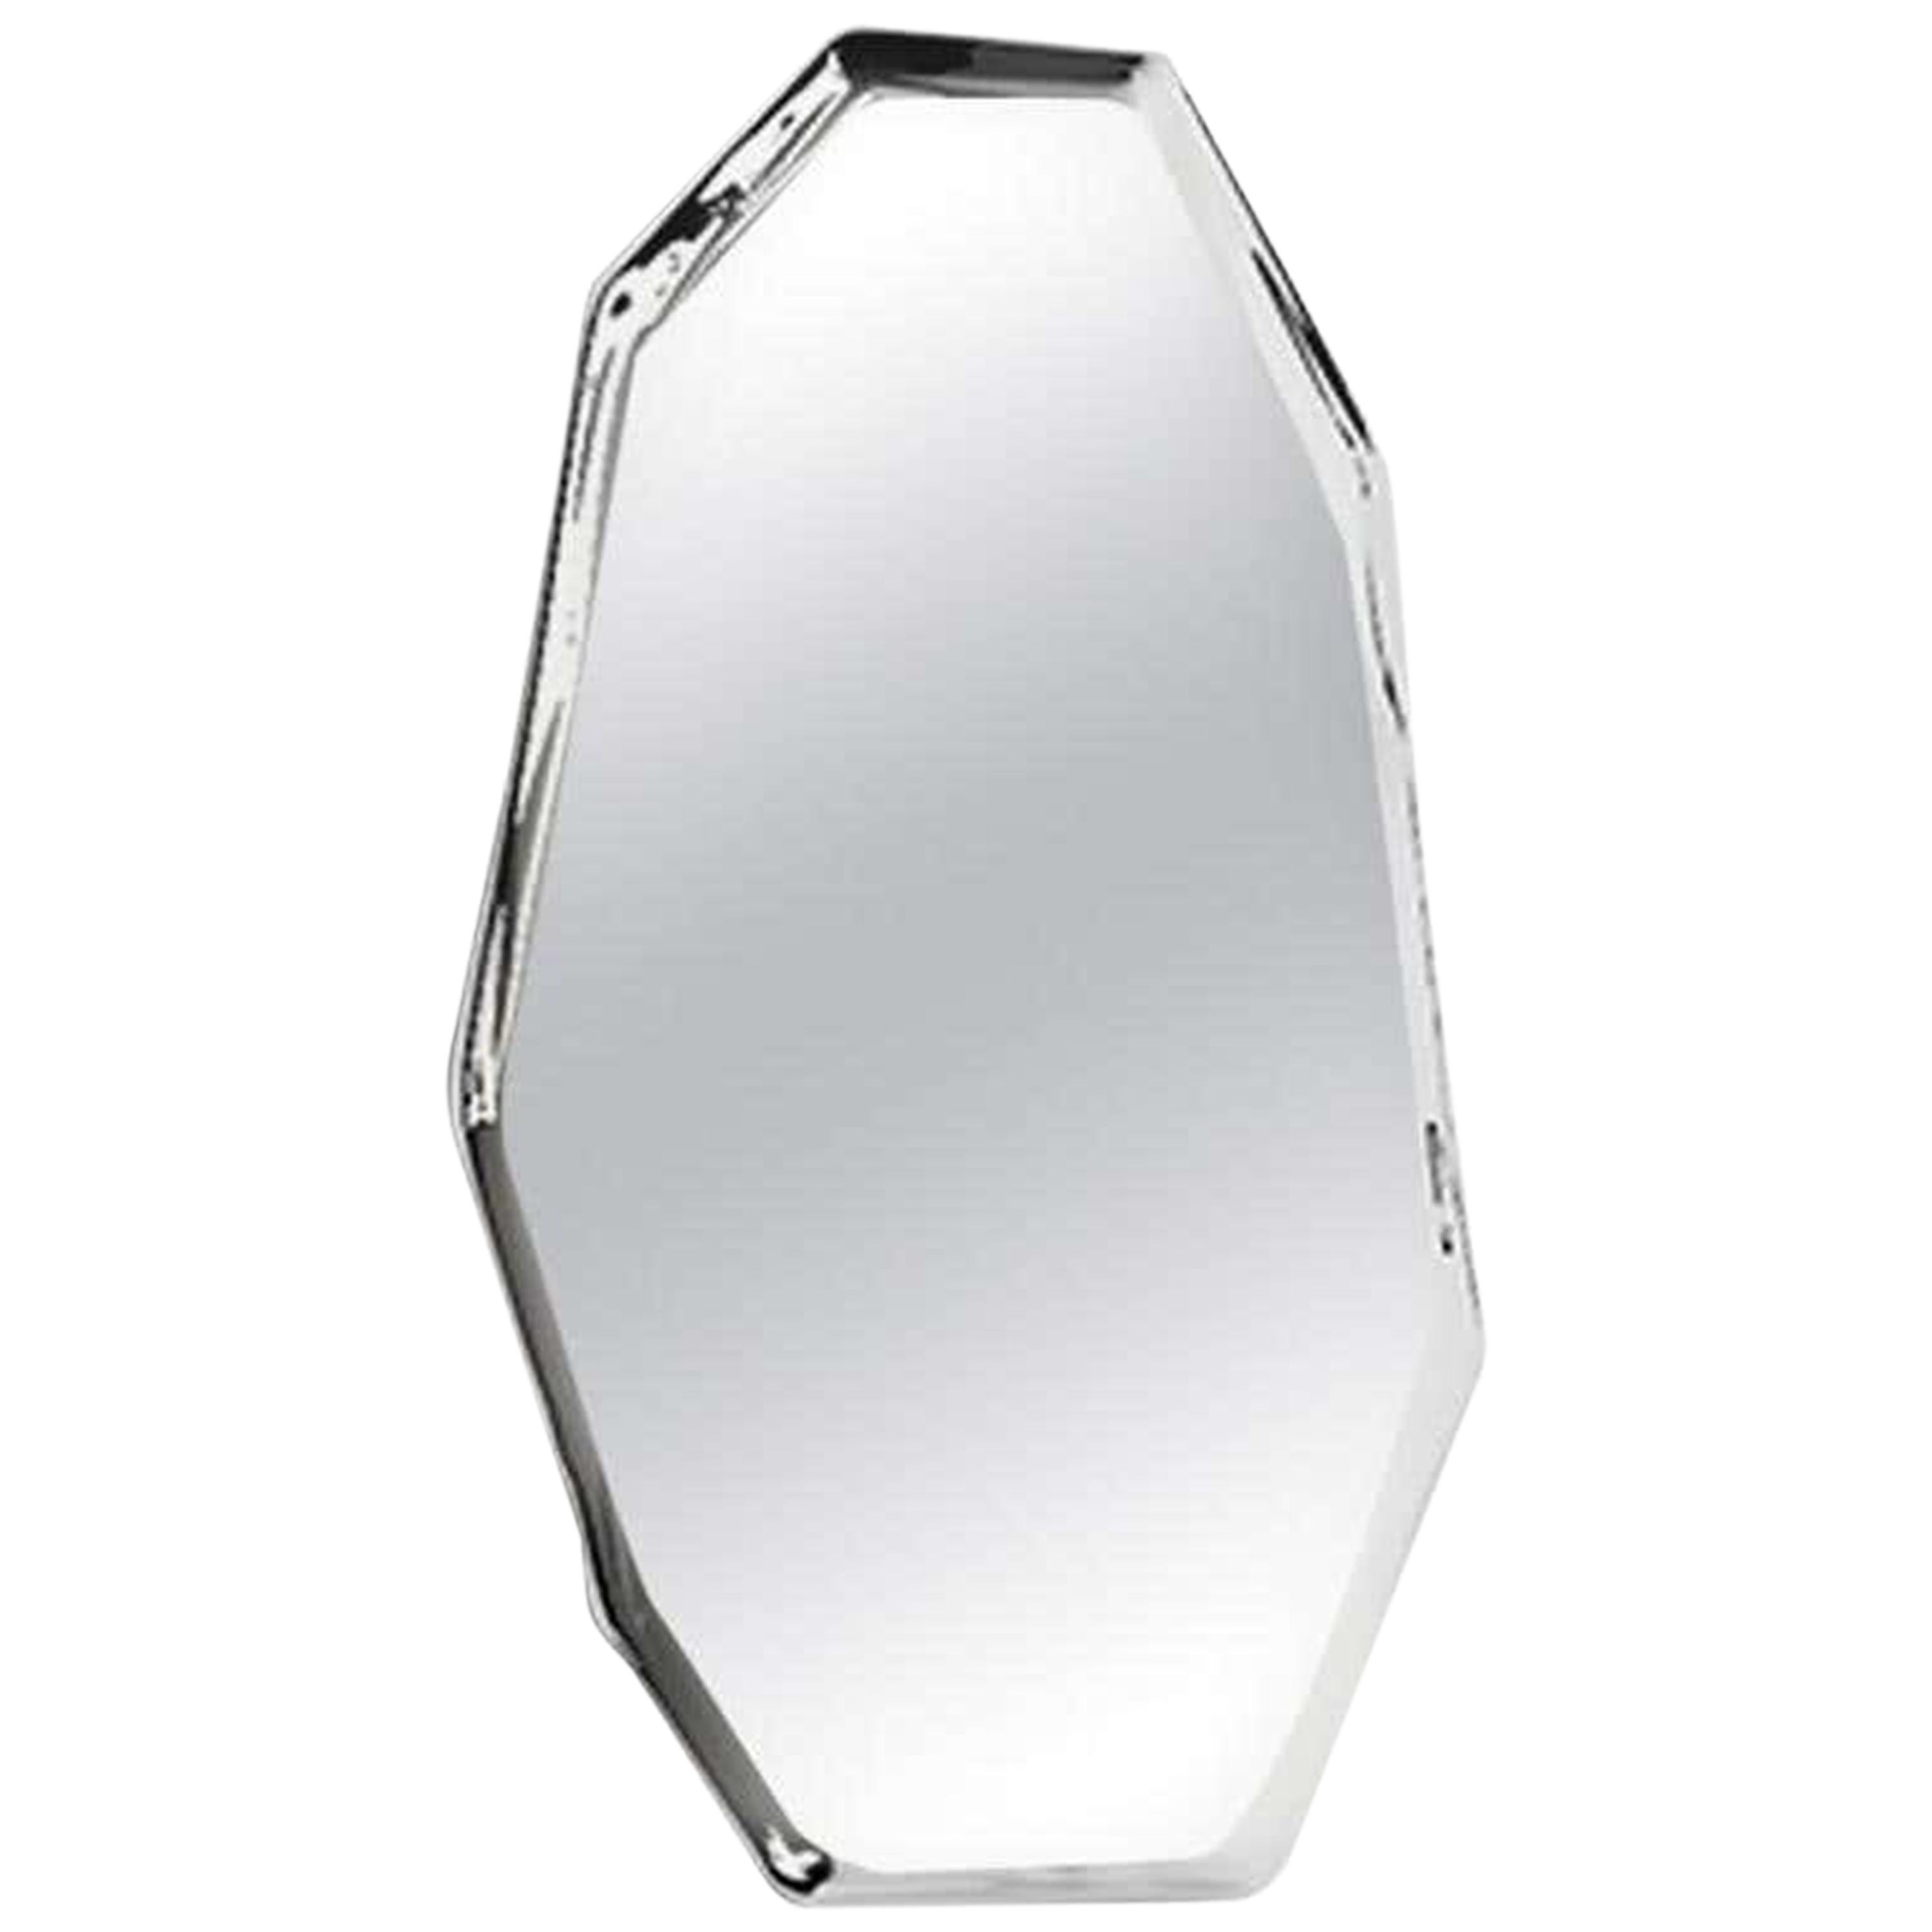 3, Limited Edition Polished Stainless Steel Wall Mirror